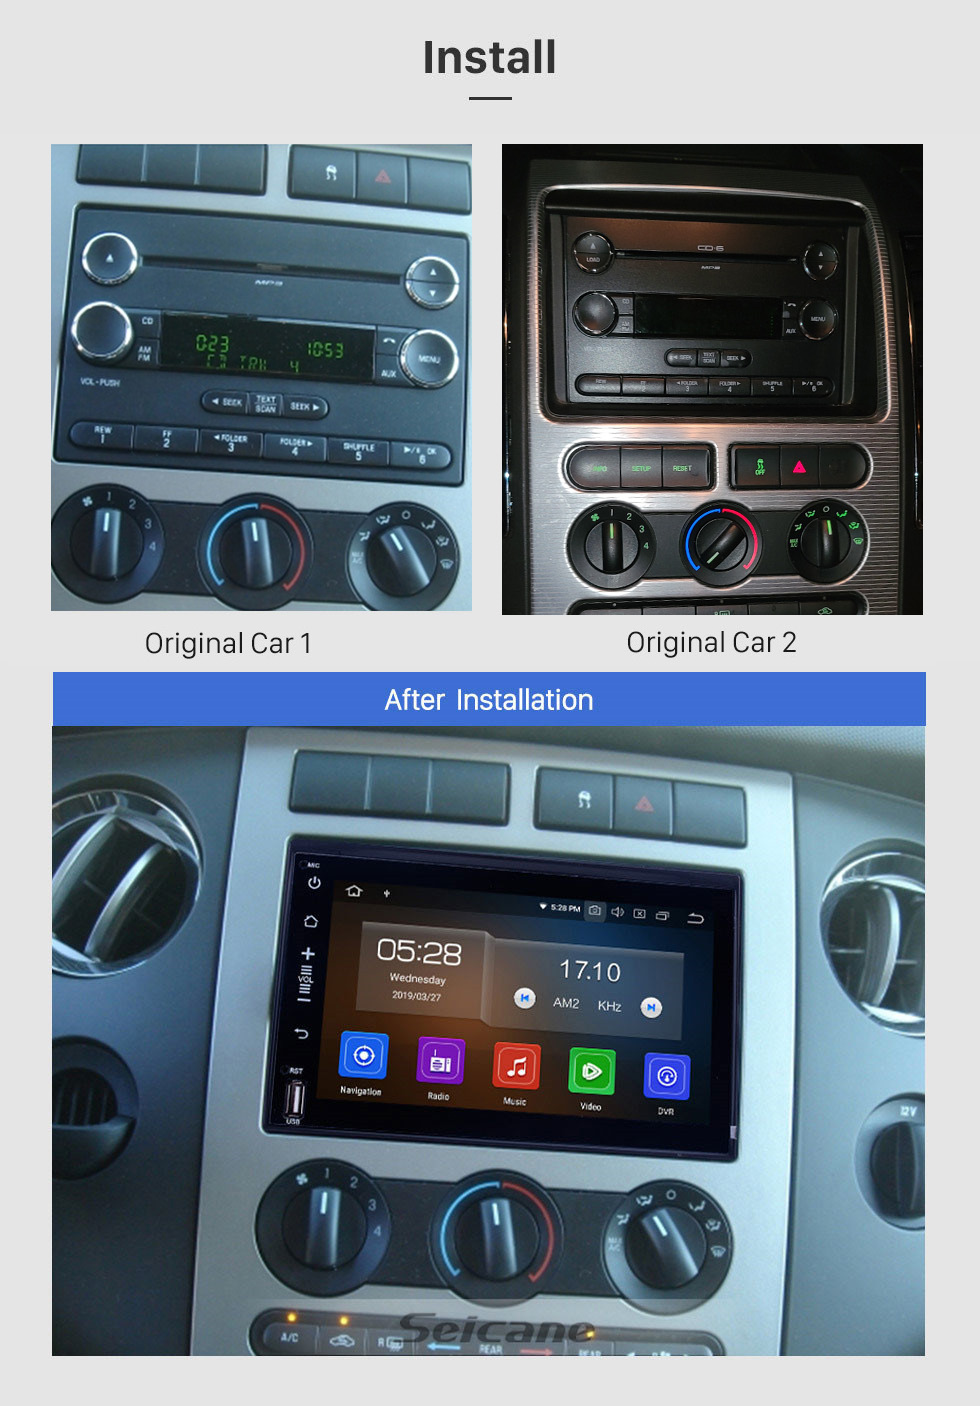 Seicane Android 10.0 DVD GPS In Dash Radio System for 2005-2009 Ford Mustang with 3G WiFi Bluetooth Mirror Link OBD2 Rearview Camera